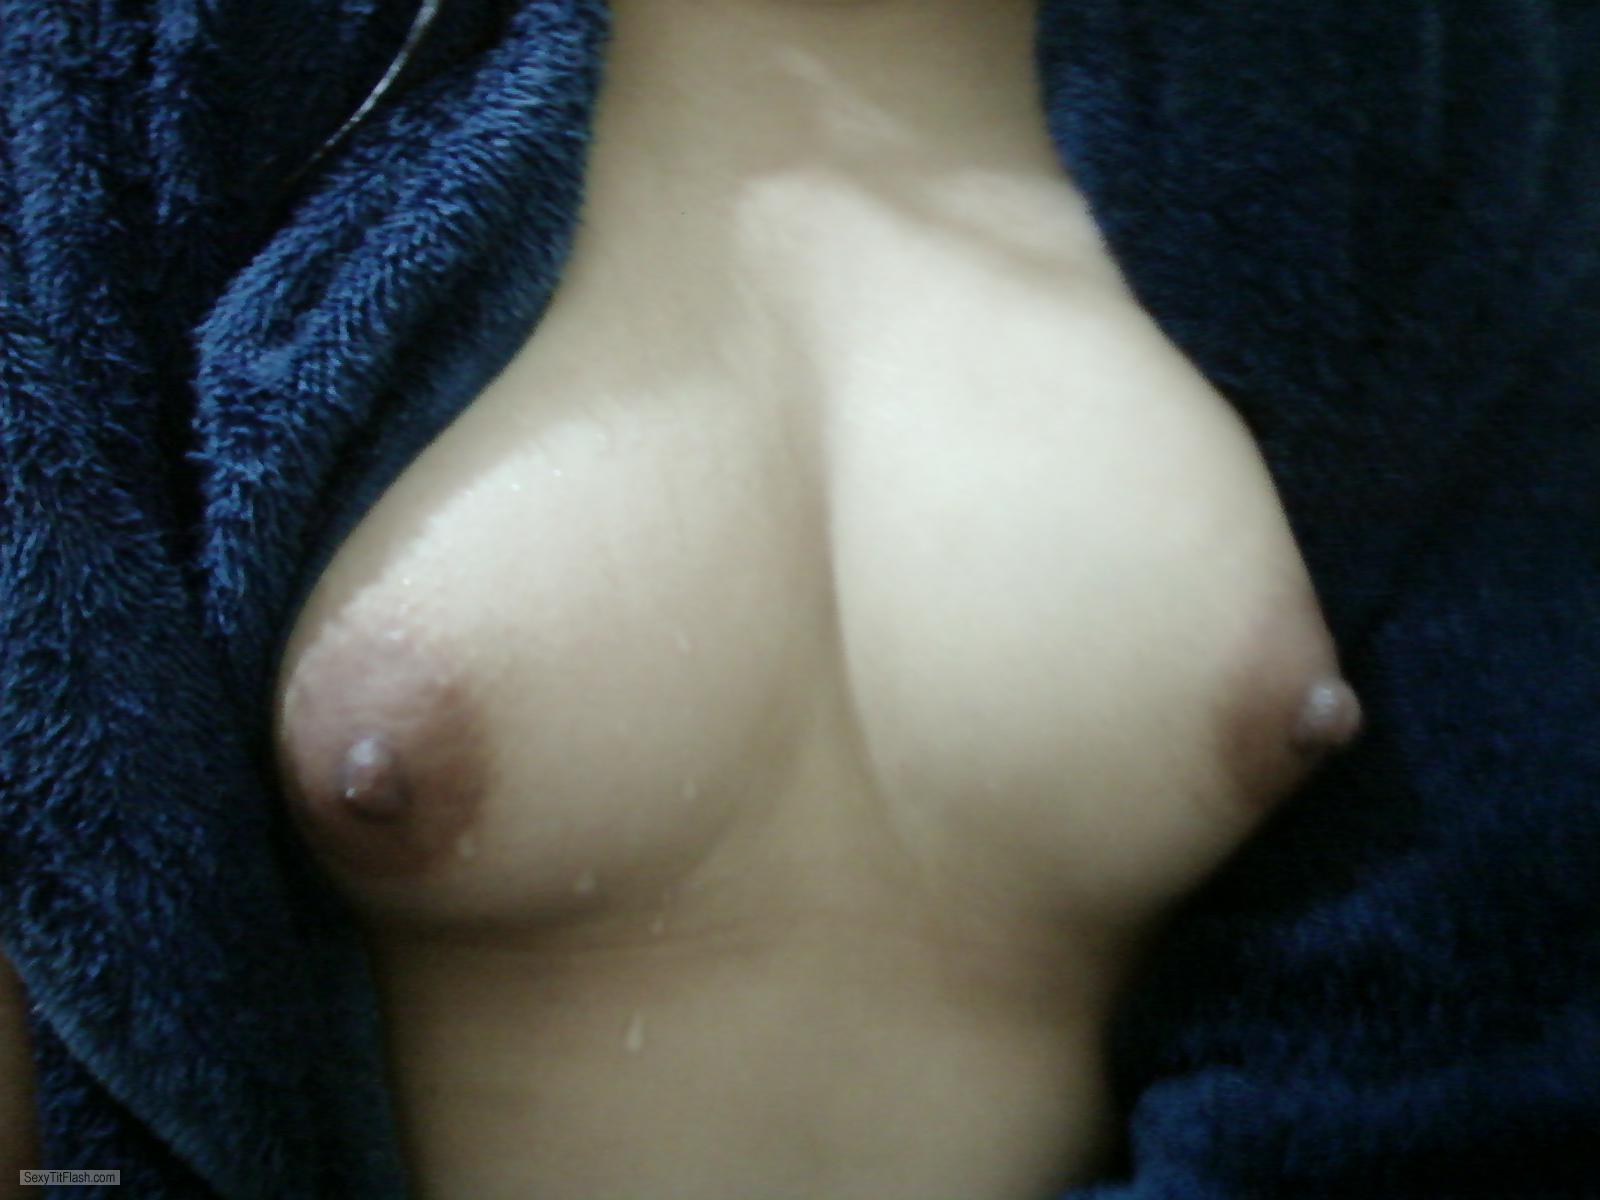 Tit Flash: My Friend's Medium Tits (Selfie) - Whitefox from United States